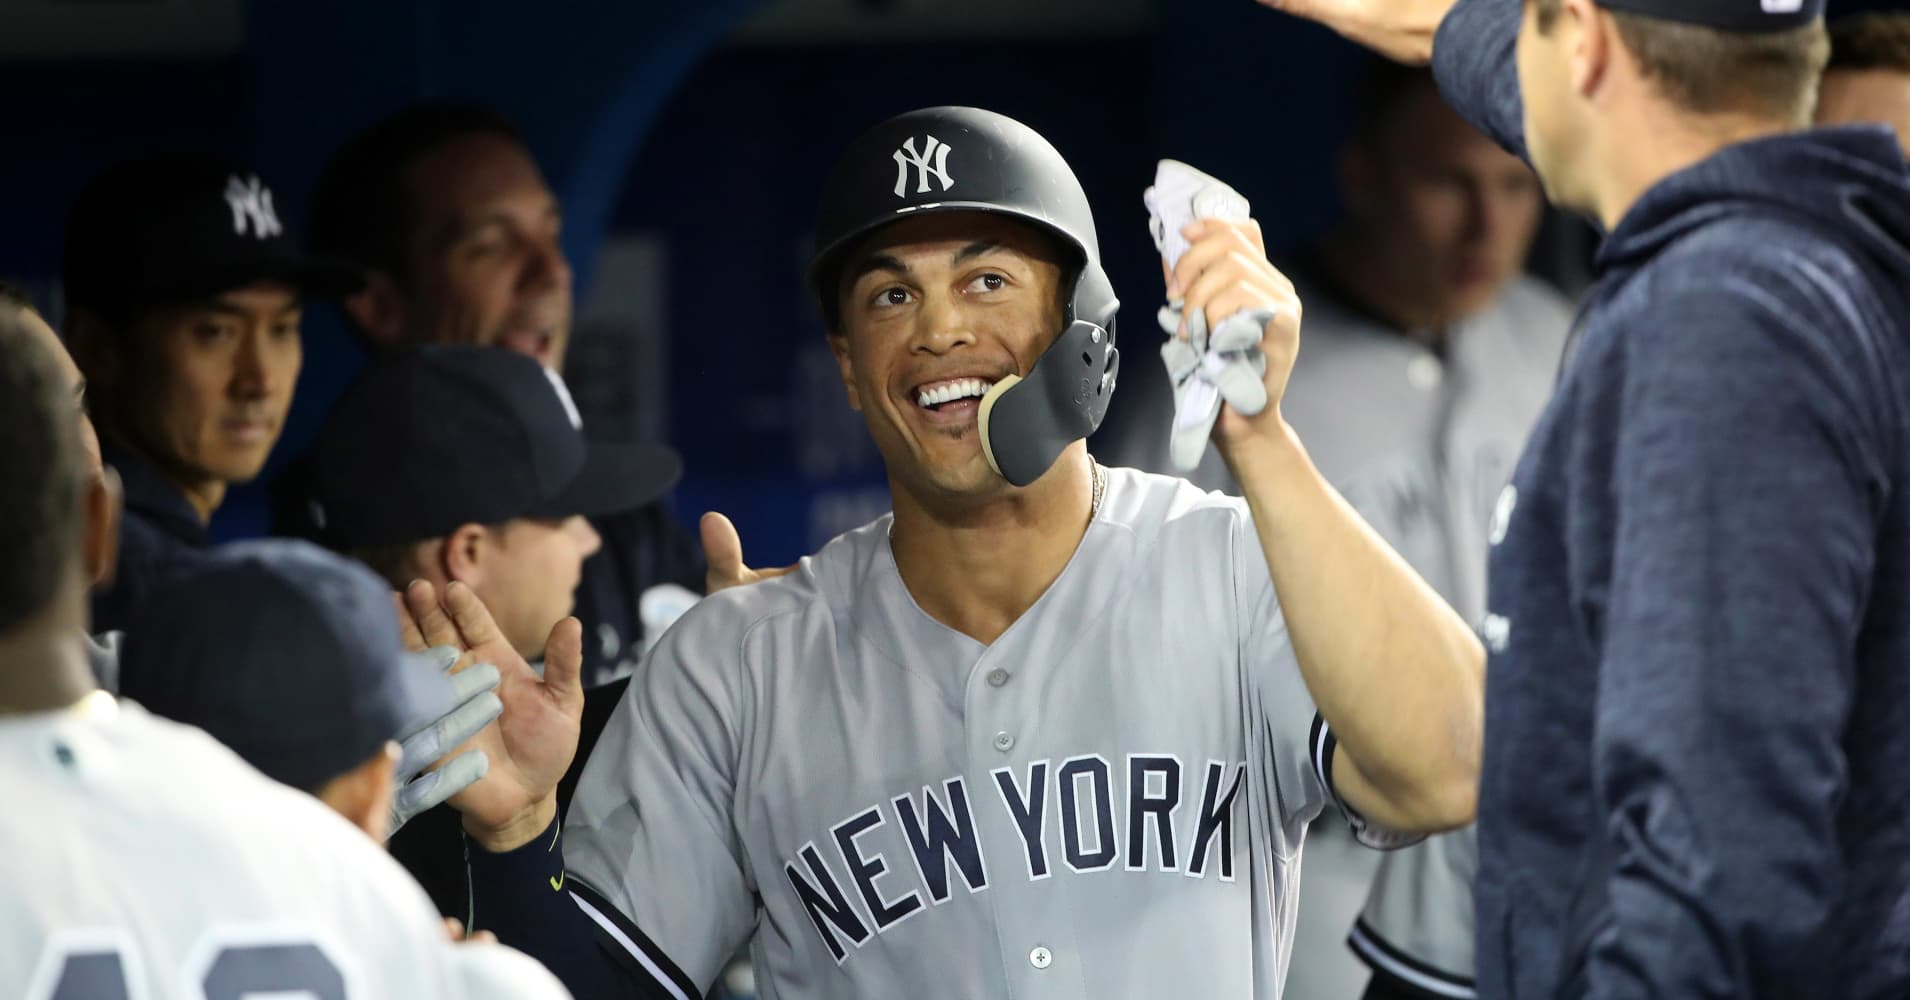 Yankees star Giancarlo Stanton makes $28 million a year but still shops at TJ Maxx